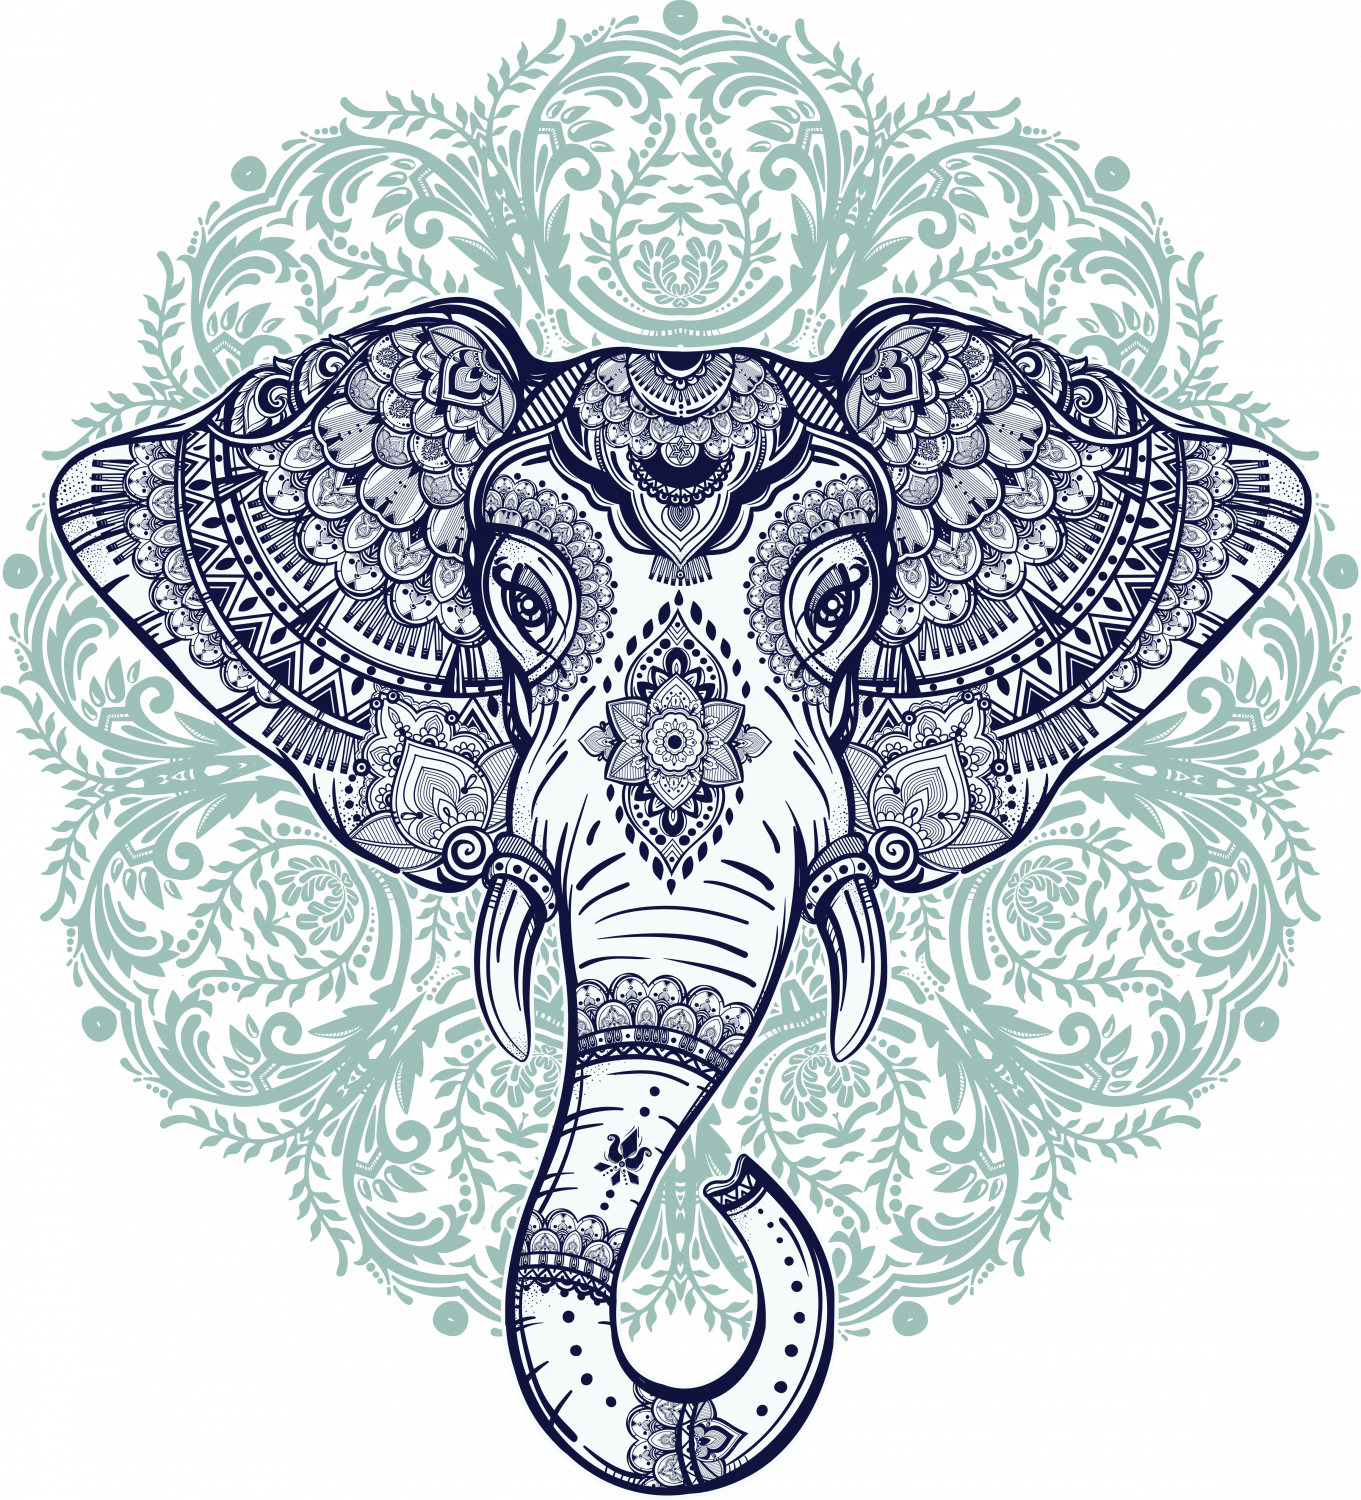 Elephant Mandala Png Elephant Mandala Elephant Mandala Designs 3073066 Vippng Beautiful quotes and custom designs. elephant mandala png elephant mandala